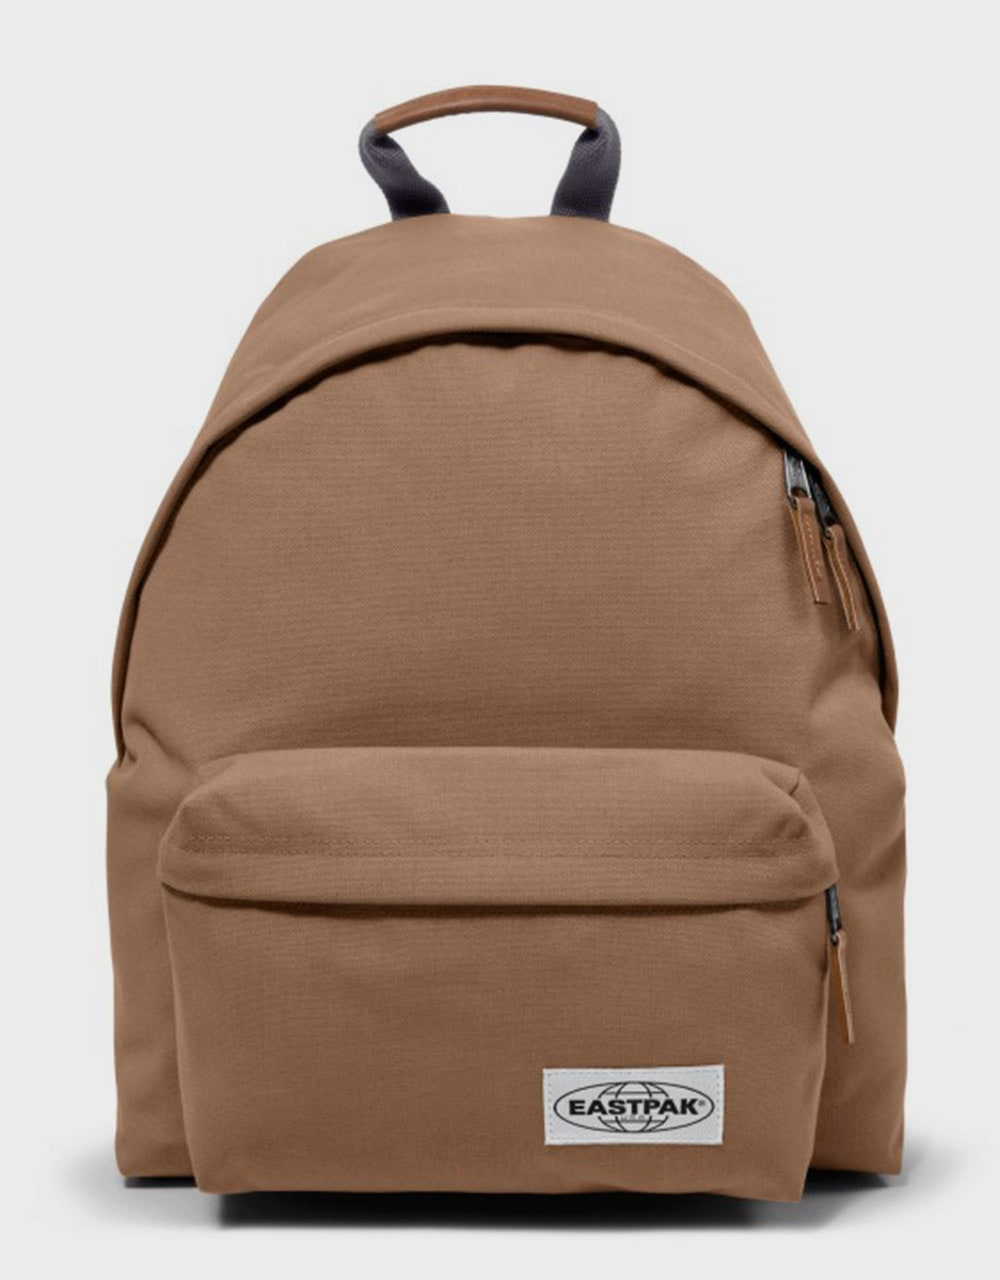 305c6ea5d35 Eastpak Padded Pak'R Backpack - Opgrade Cream | Sale Accessories |  Clearance Accessories | Route One